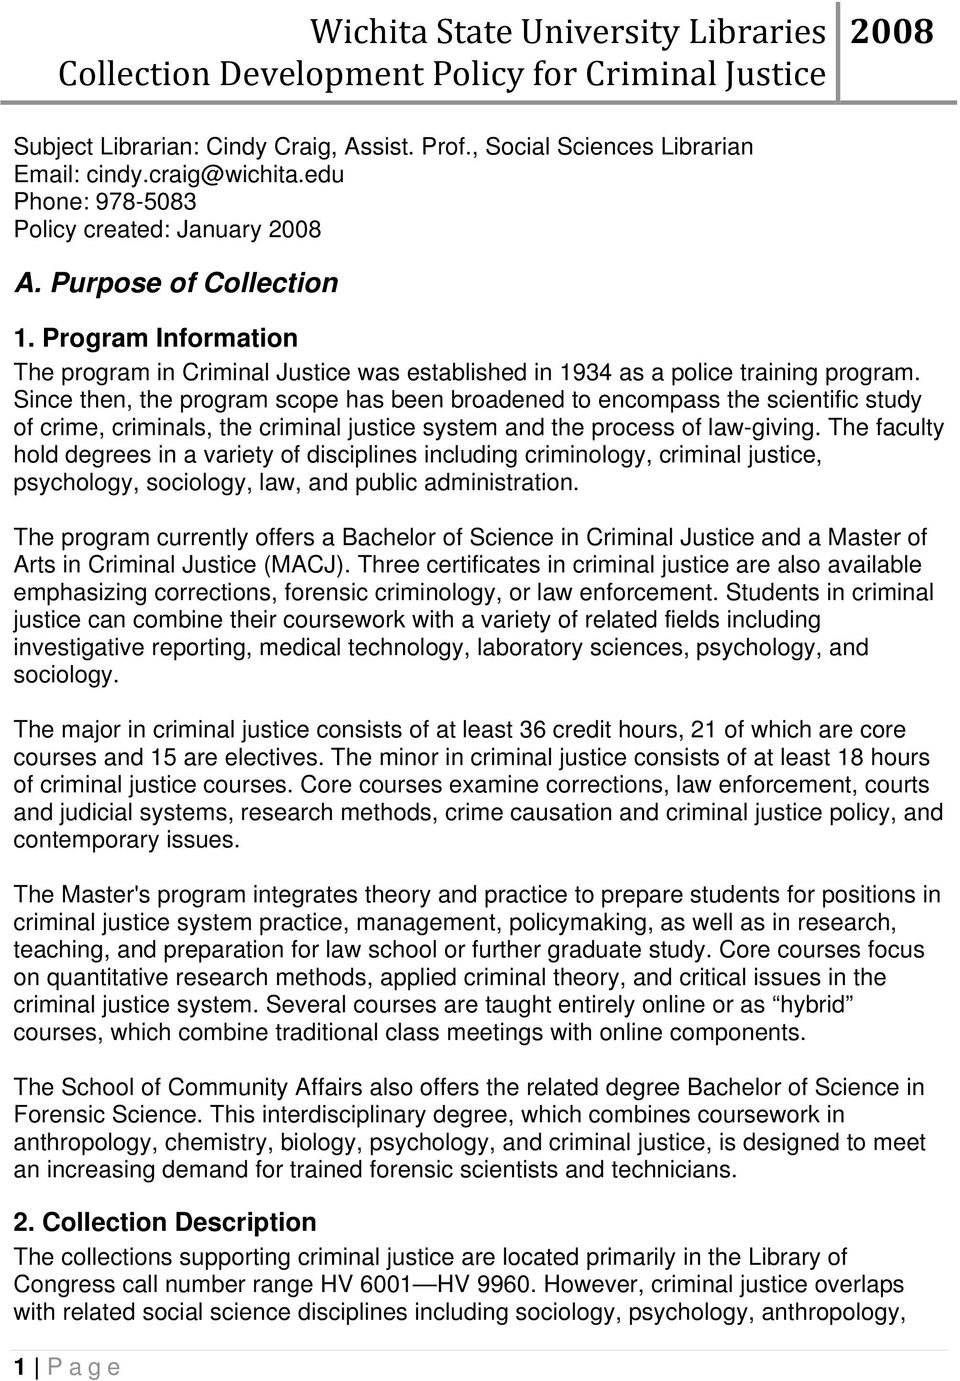 Since then, the program scope has been broadened to encompass the scientific study of crime, criminals, the criminal justice system and the process of law-giving.